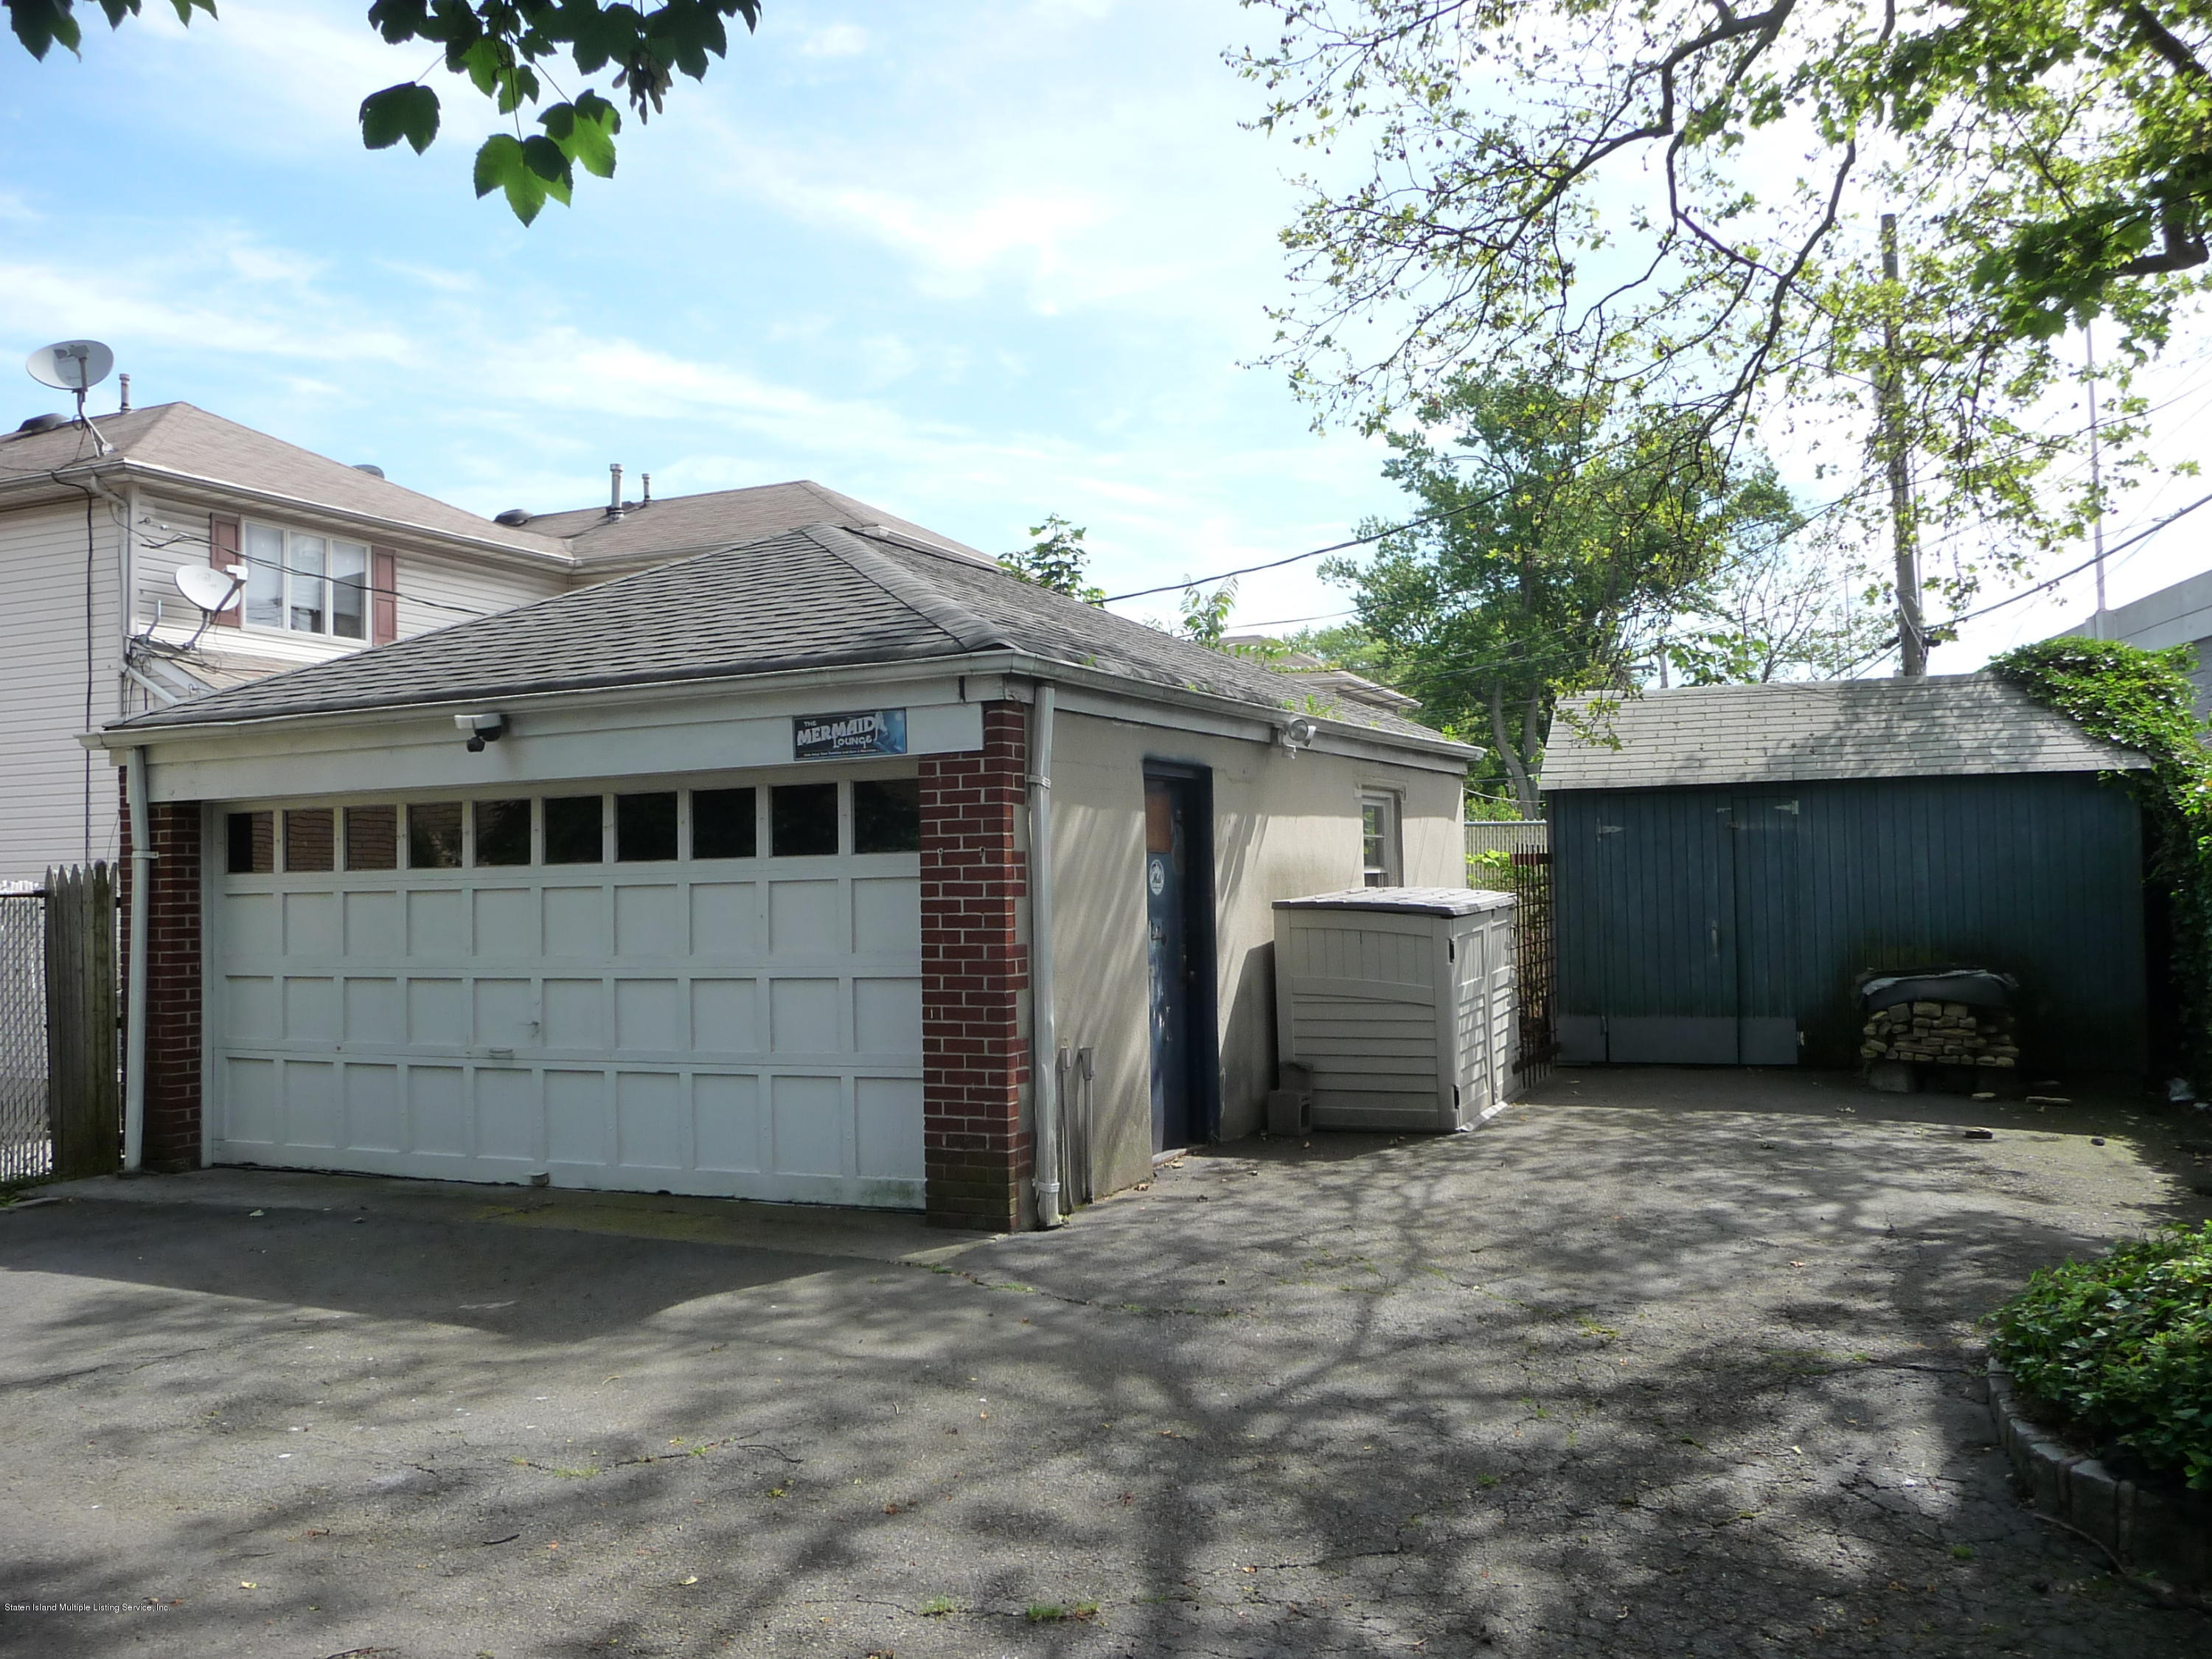 Single Family - Detached 77 Todt Hill Road  Staten Island, NY 10314, MLS-1129718-56